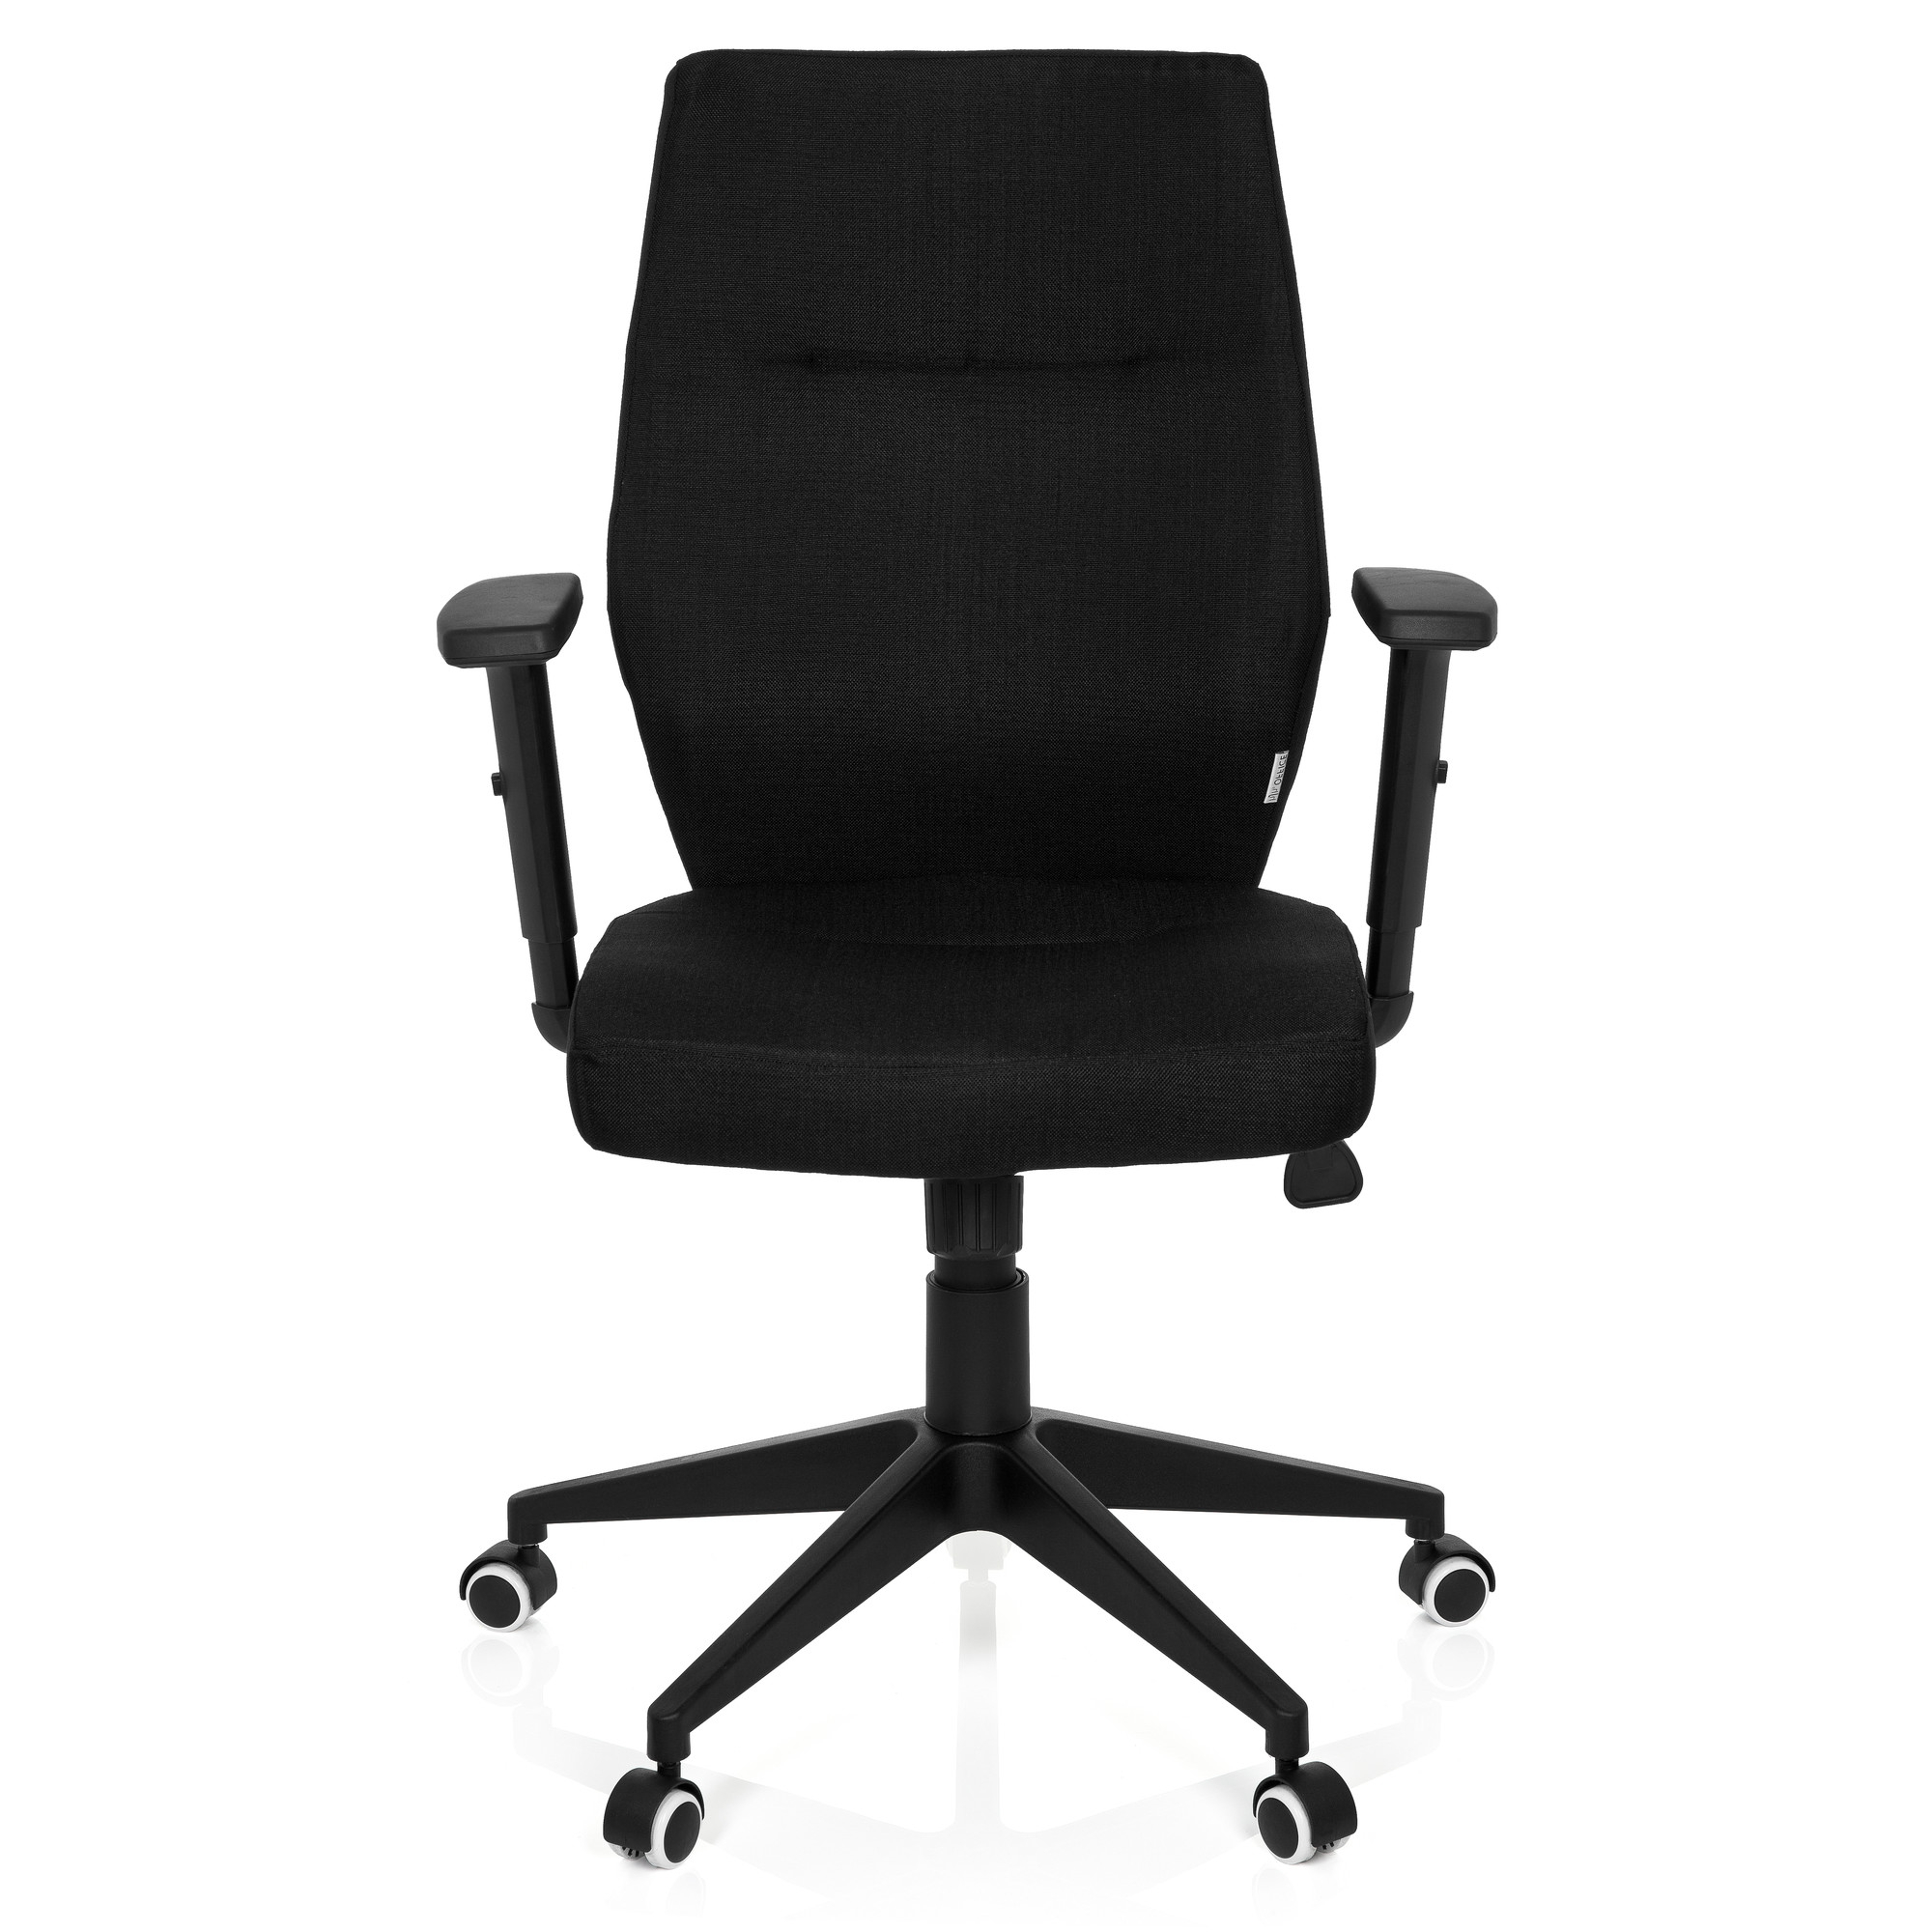 Professional Office Chairs Matteo – Professional Office Chair Hjh With Regard To Most Recently Released Matteo Arm Sofa Chairs (Gallery 10 of 20)